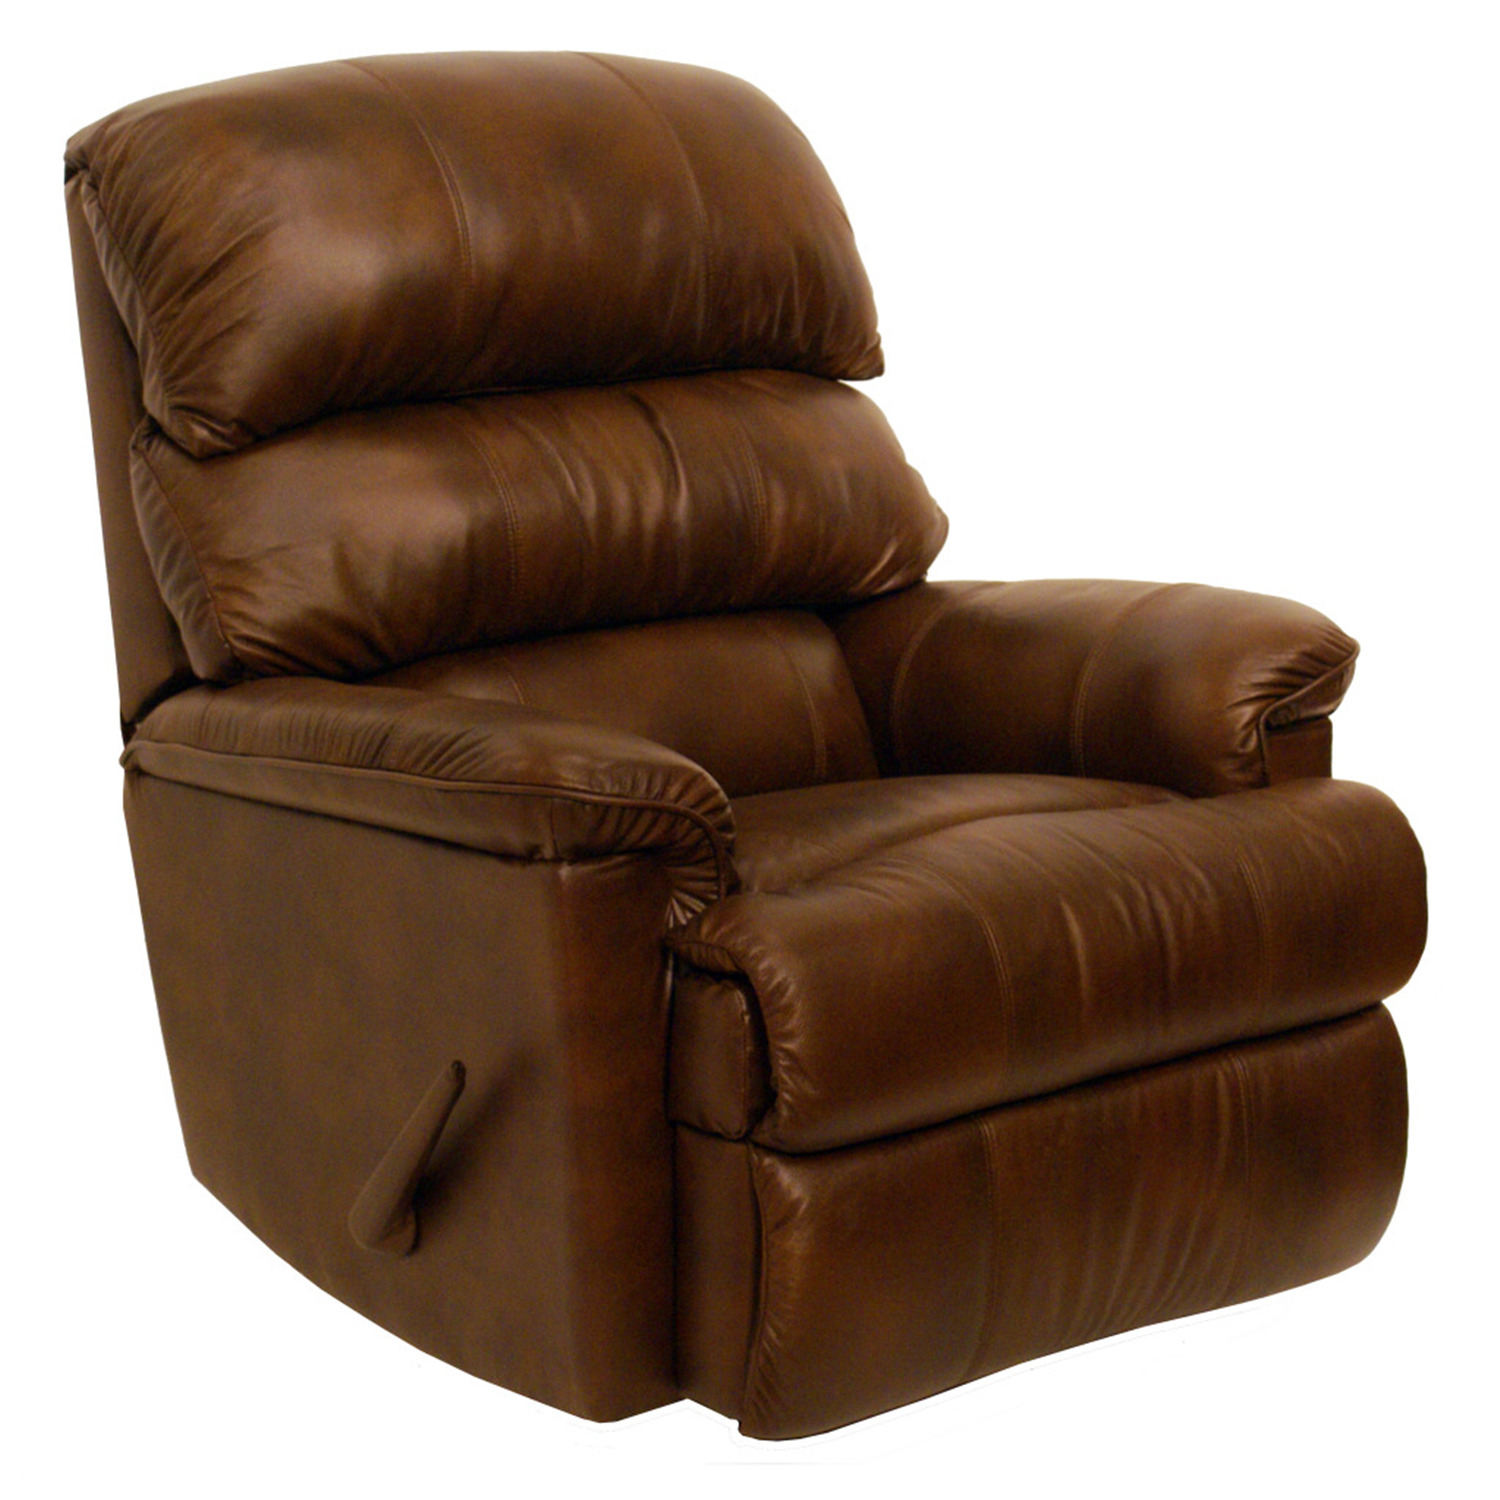 Catnapper bentley leather rocker recliner by oj commerce for Catnapper cloud nine chaise recliner